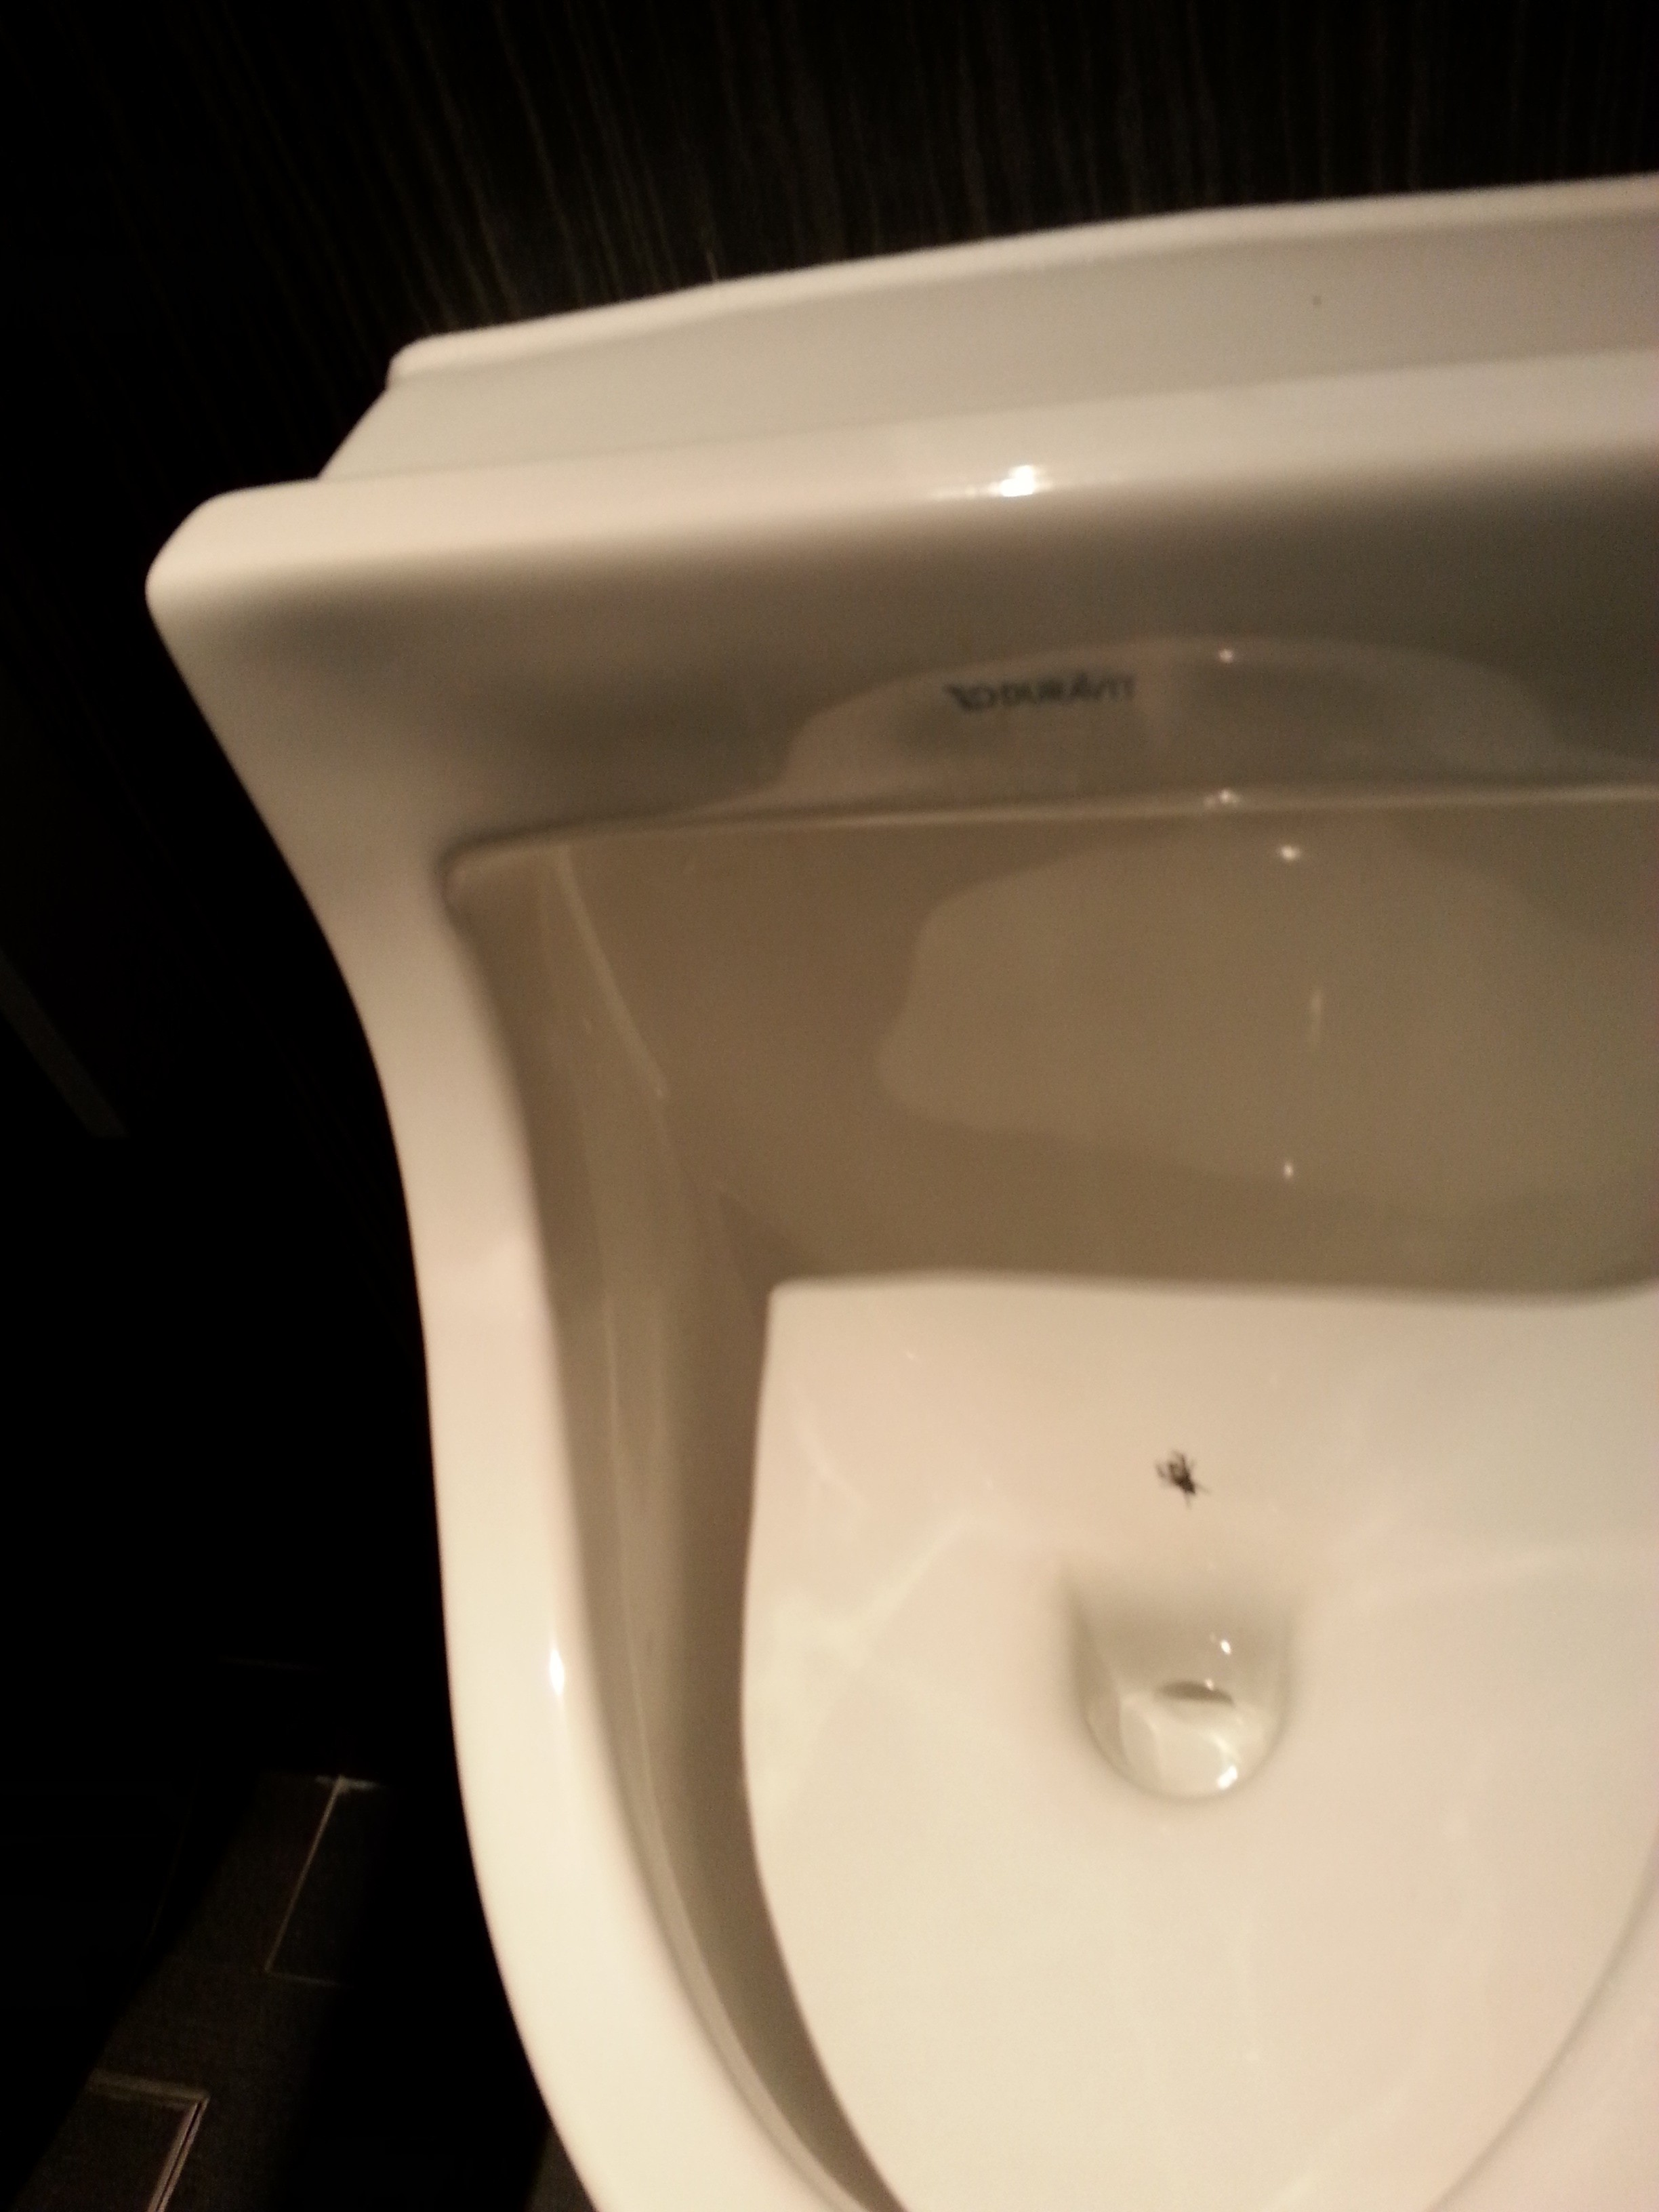 What do charities and flies in urinals have in common?